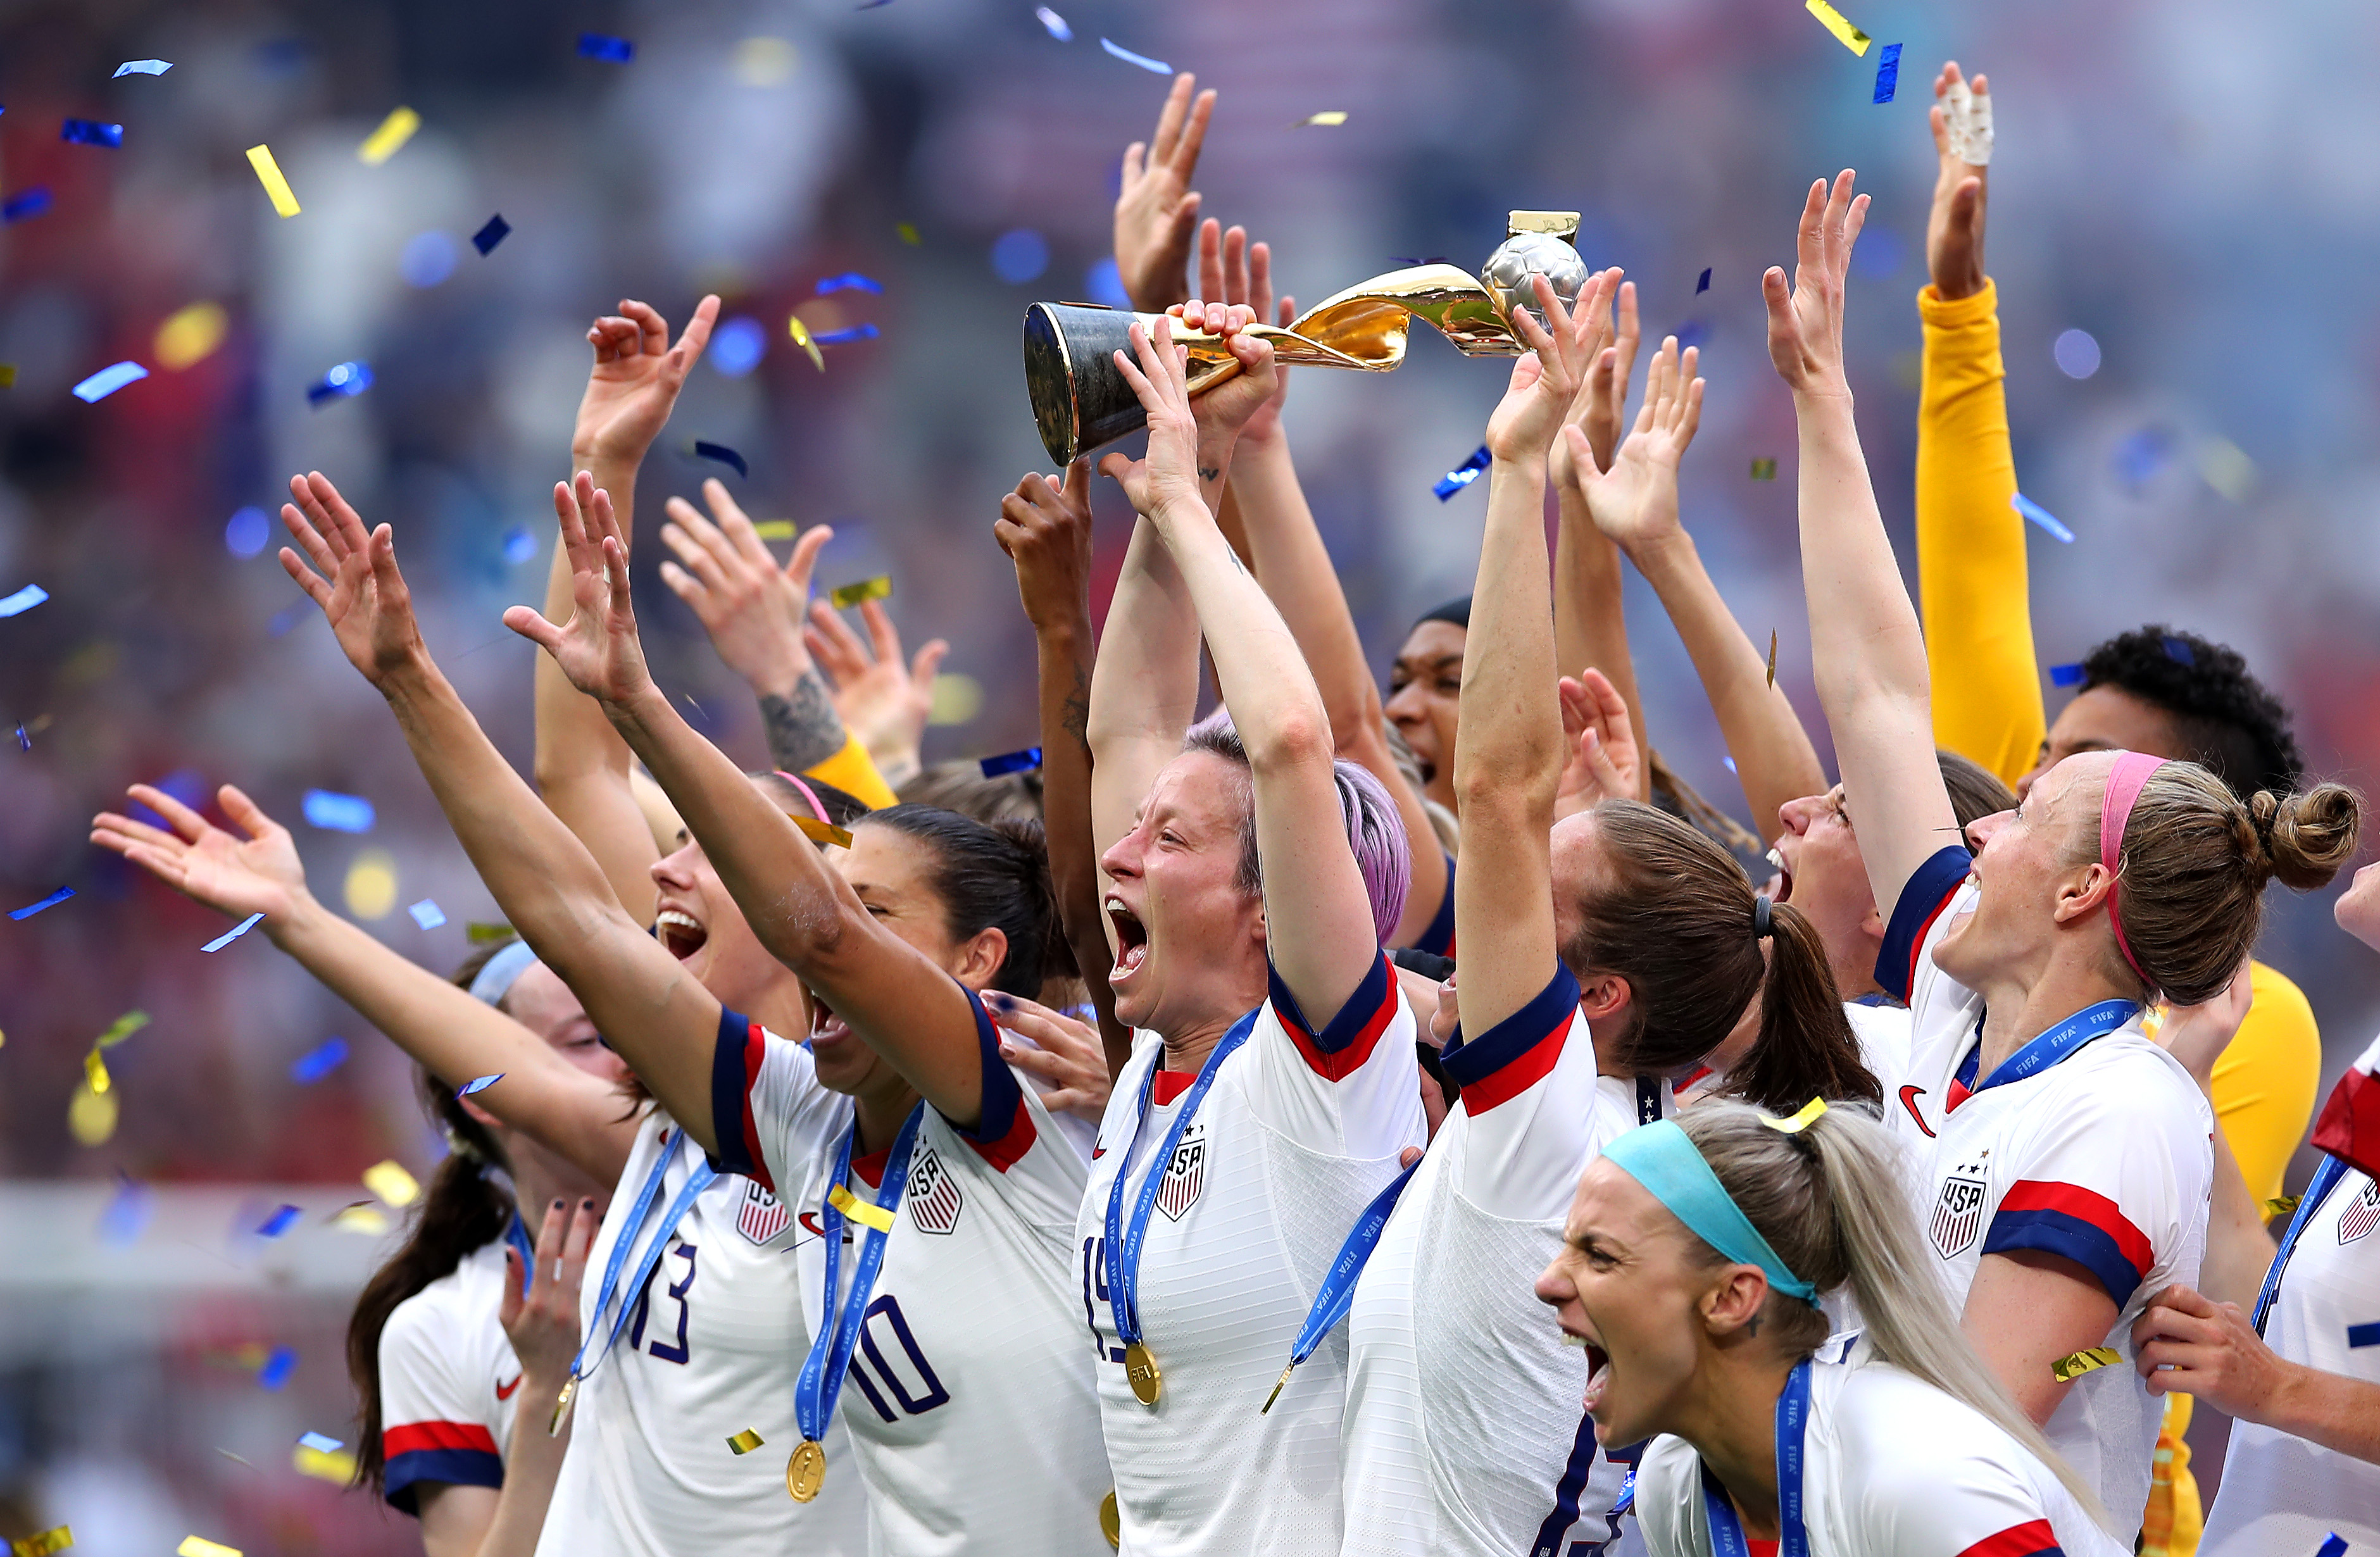 Are U S  women's soccer players really earning less than men